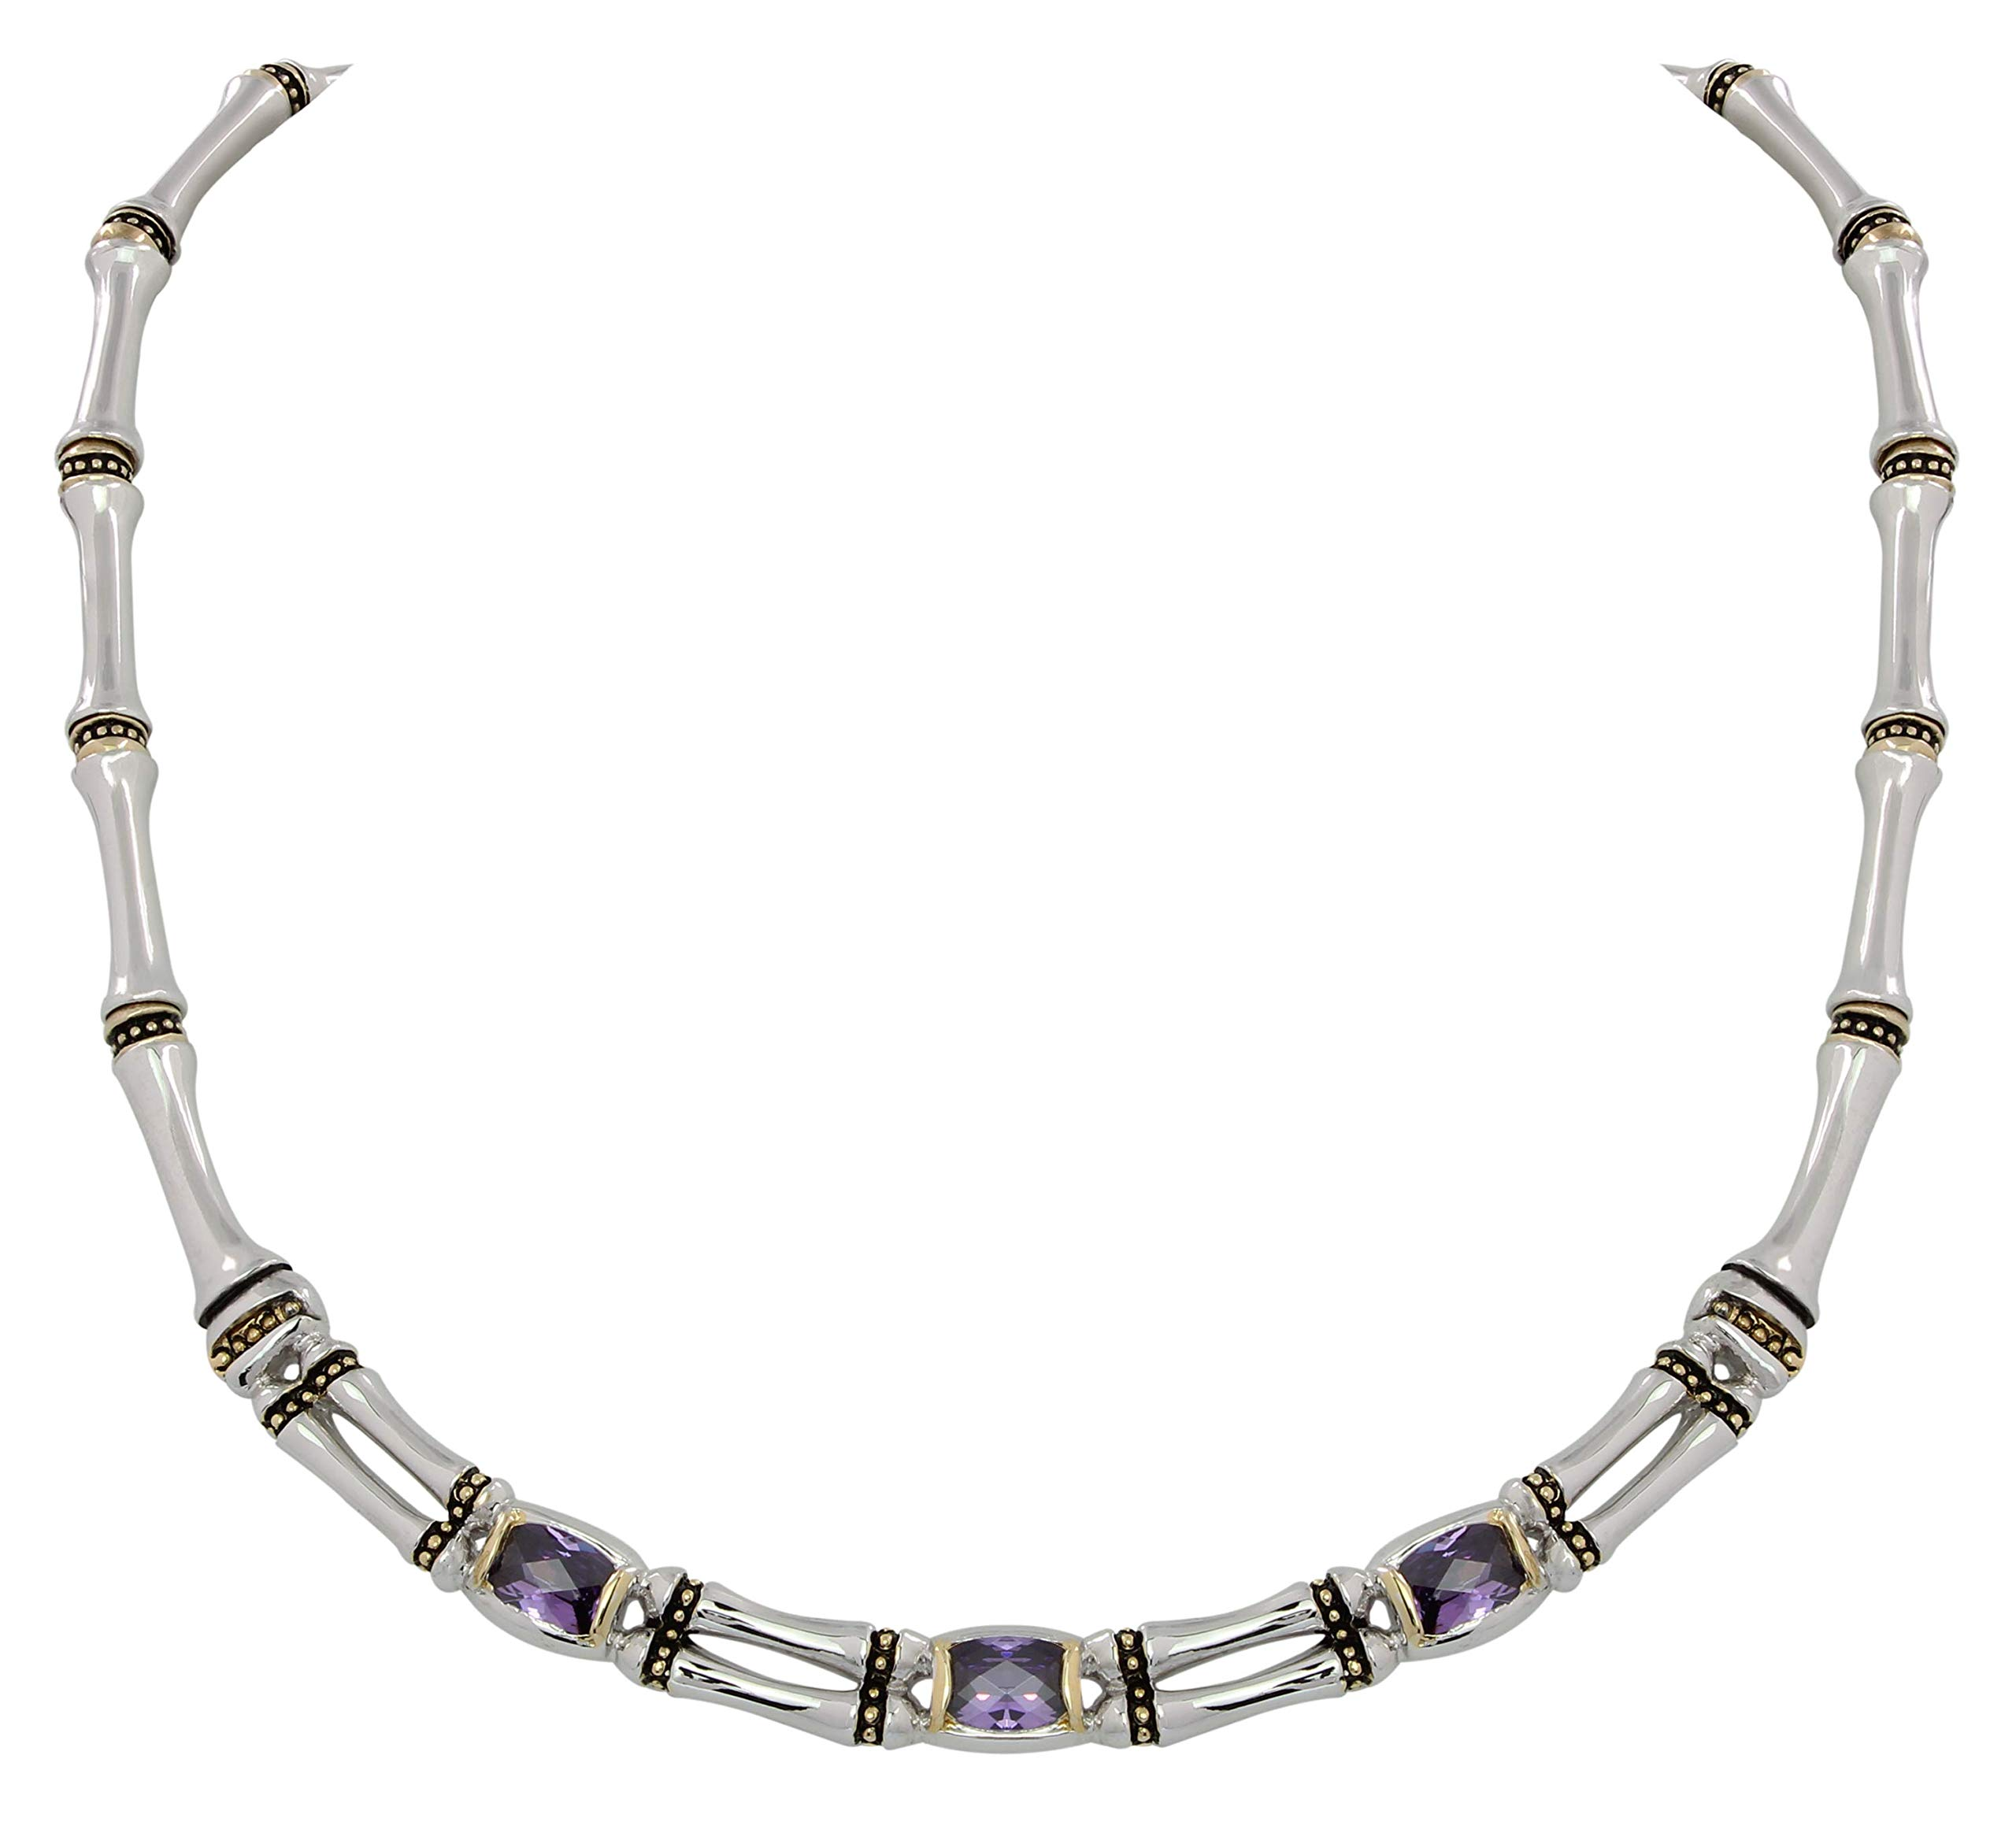 Gold and Silver Tone Two Row Hinged 16'' Necklace with Amethyst Colored Stones Made in USA